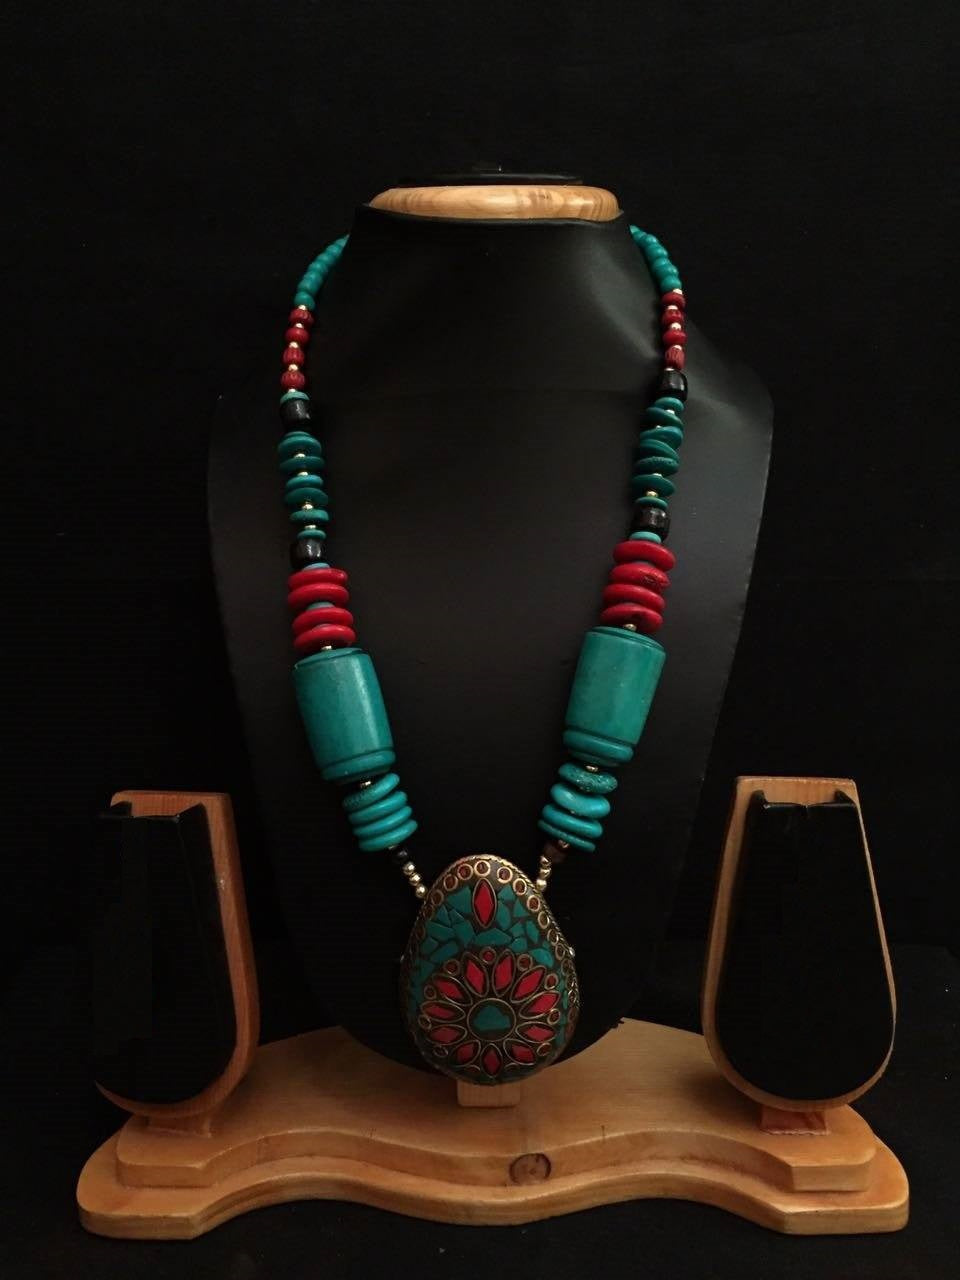 Handmade Beautiful Nepalian Beads Coral Stones Necklace with  German Silver Pendant Decorated with Coral Turquoise Stones